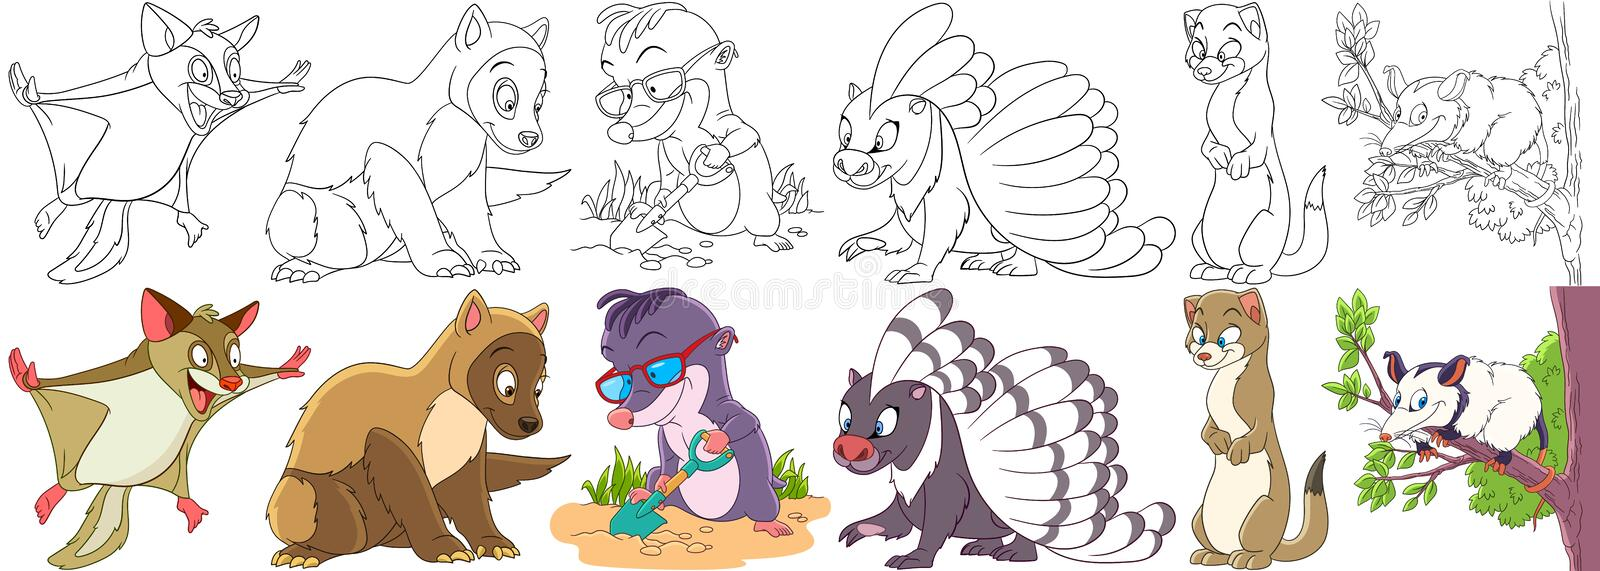 Cartoon fluffy animals set royalty free stock images